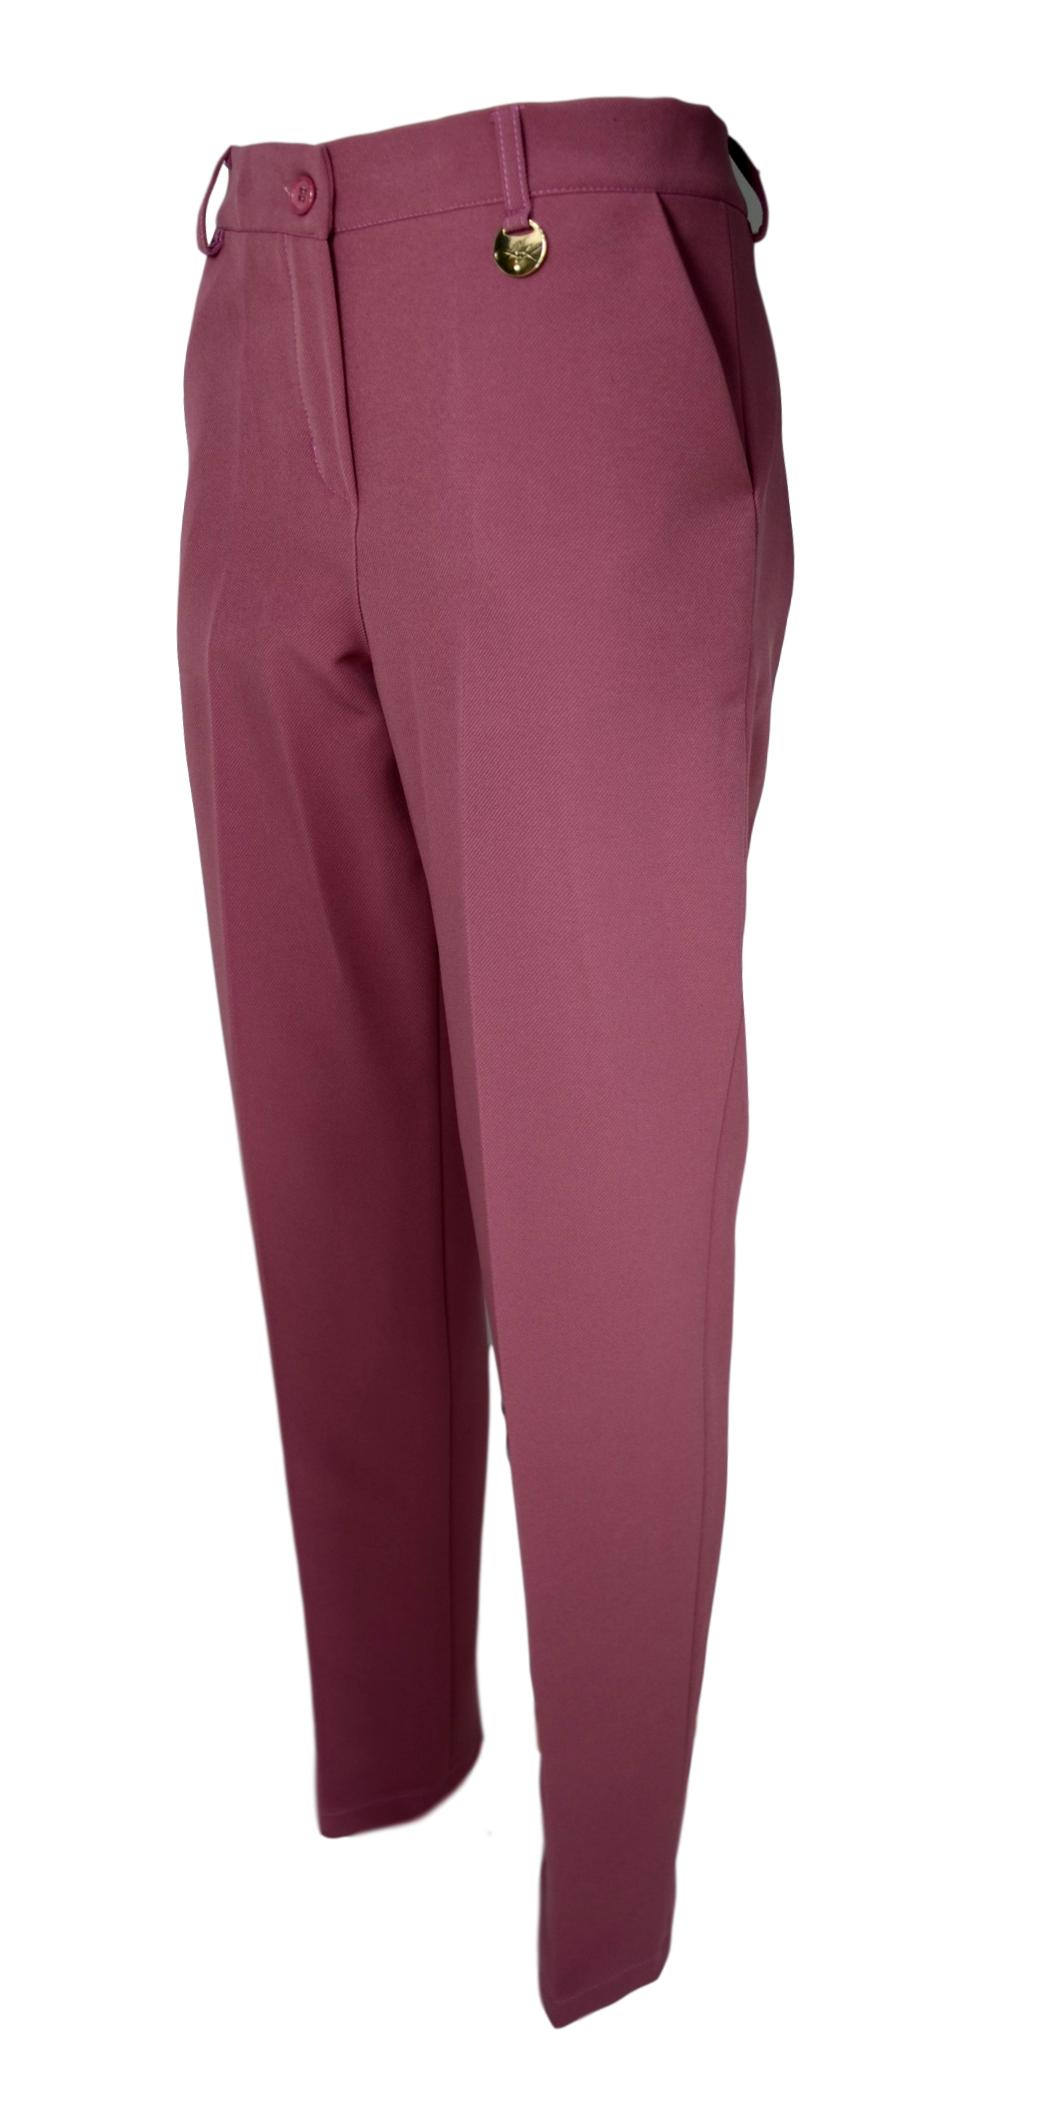 LISA KOTT PANTALONE DONNA CURVY STYLE 6003 COLORE ROSA MADE IN ITALY